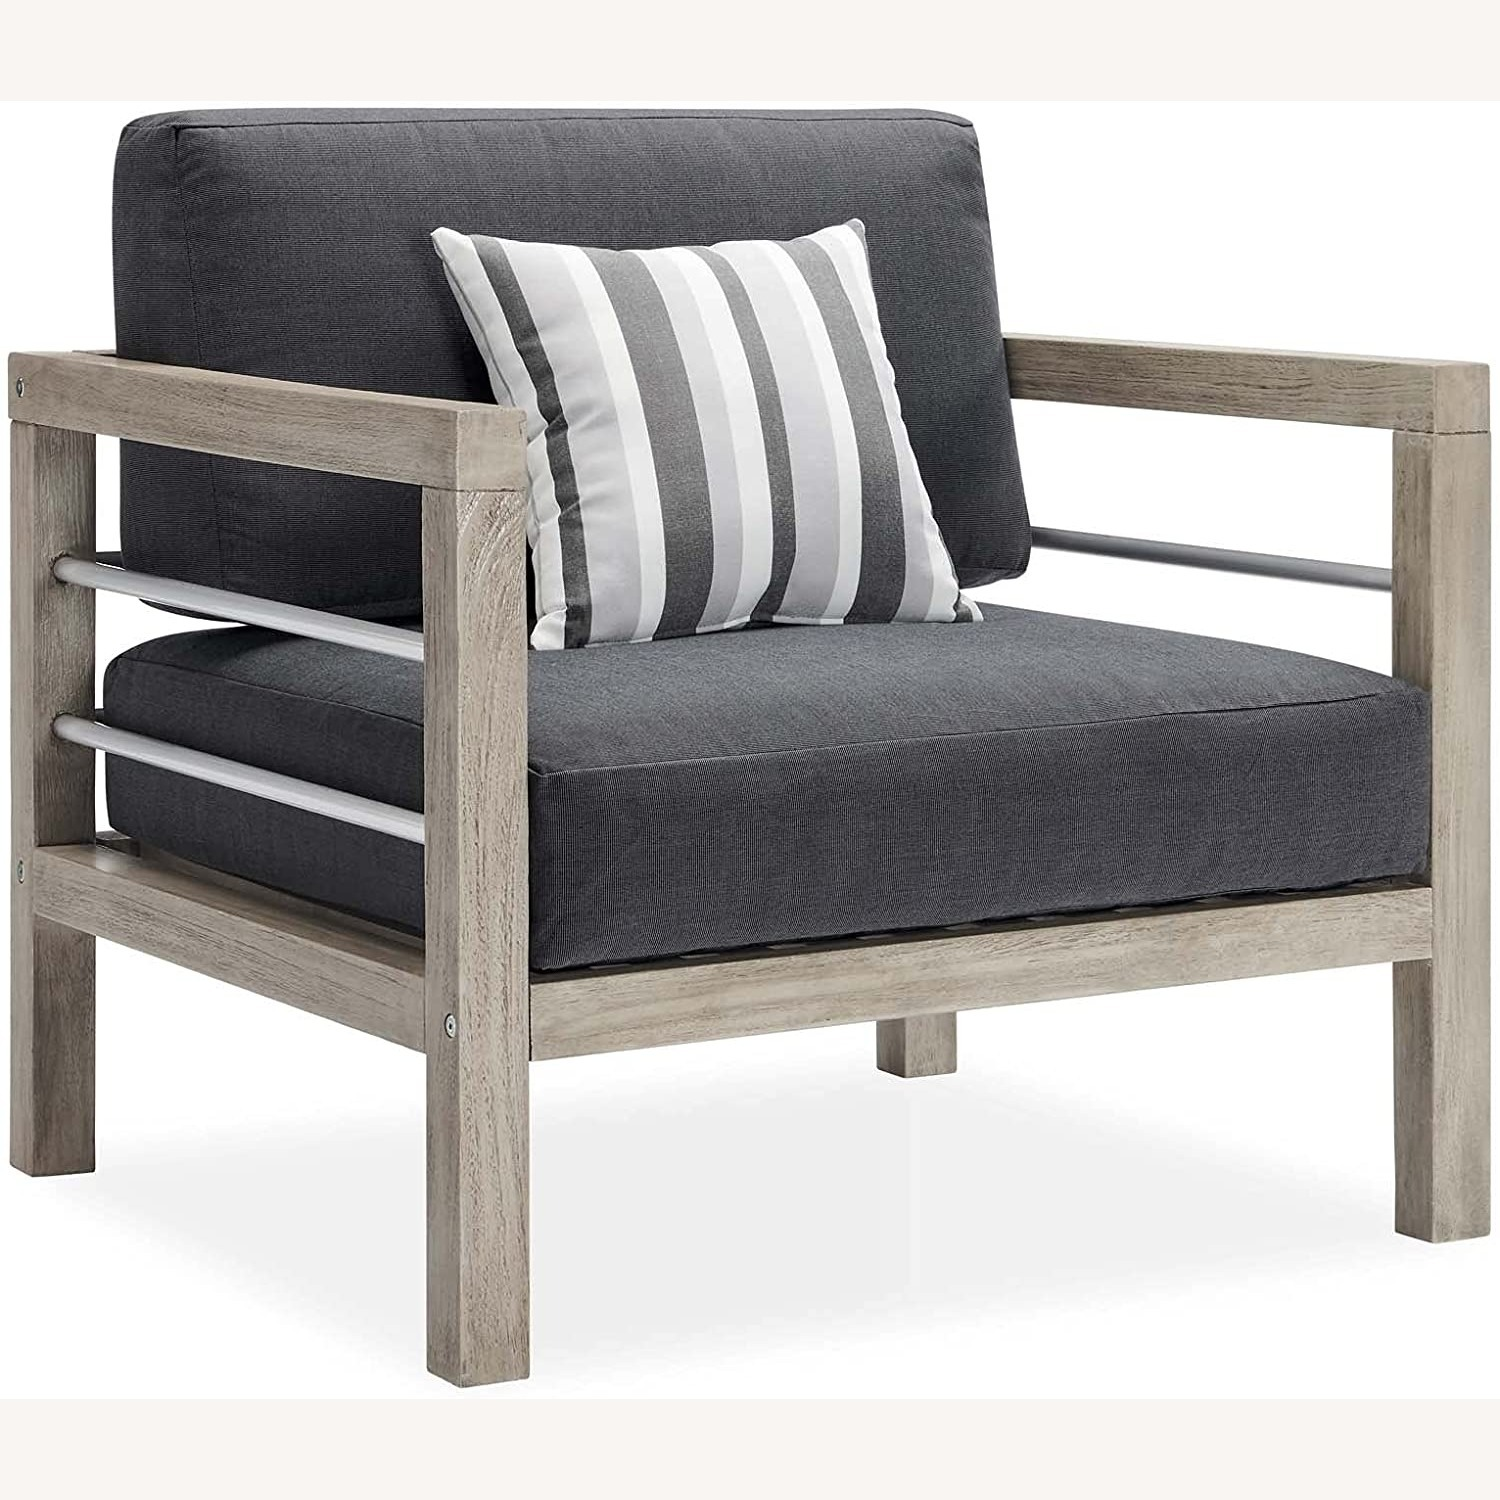 Outdoor Patio Set In Light Gray Wood Finish - image-5